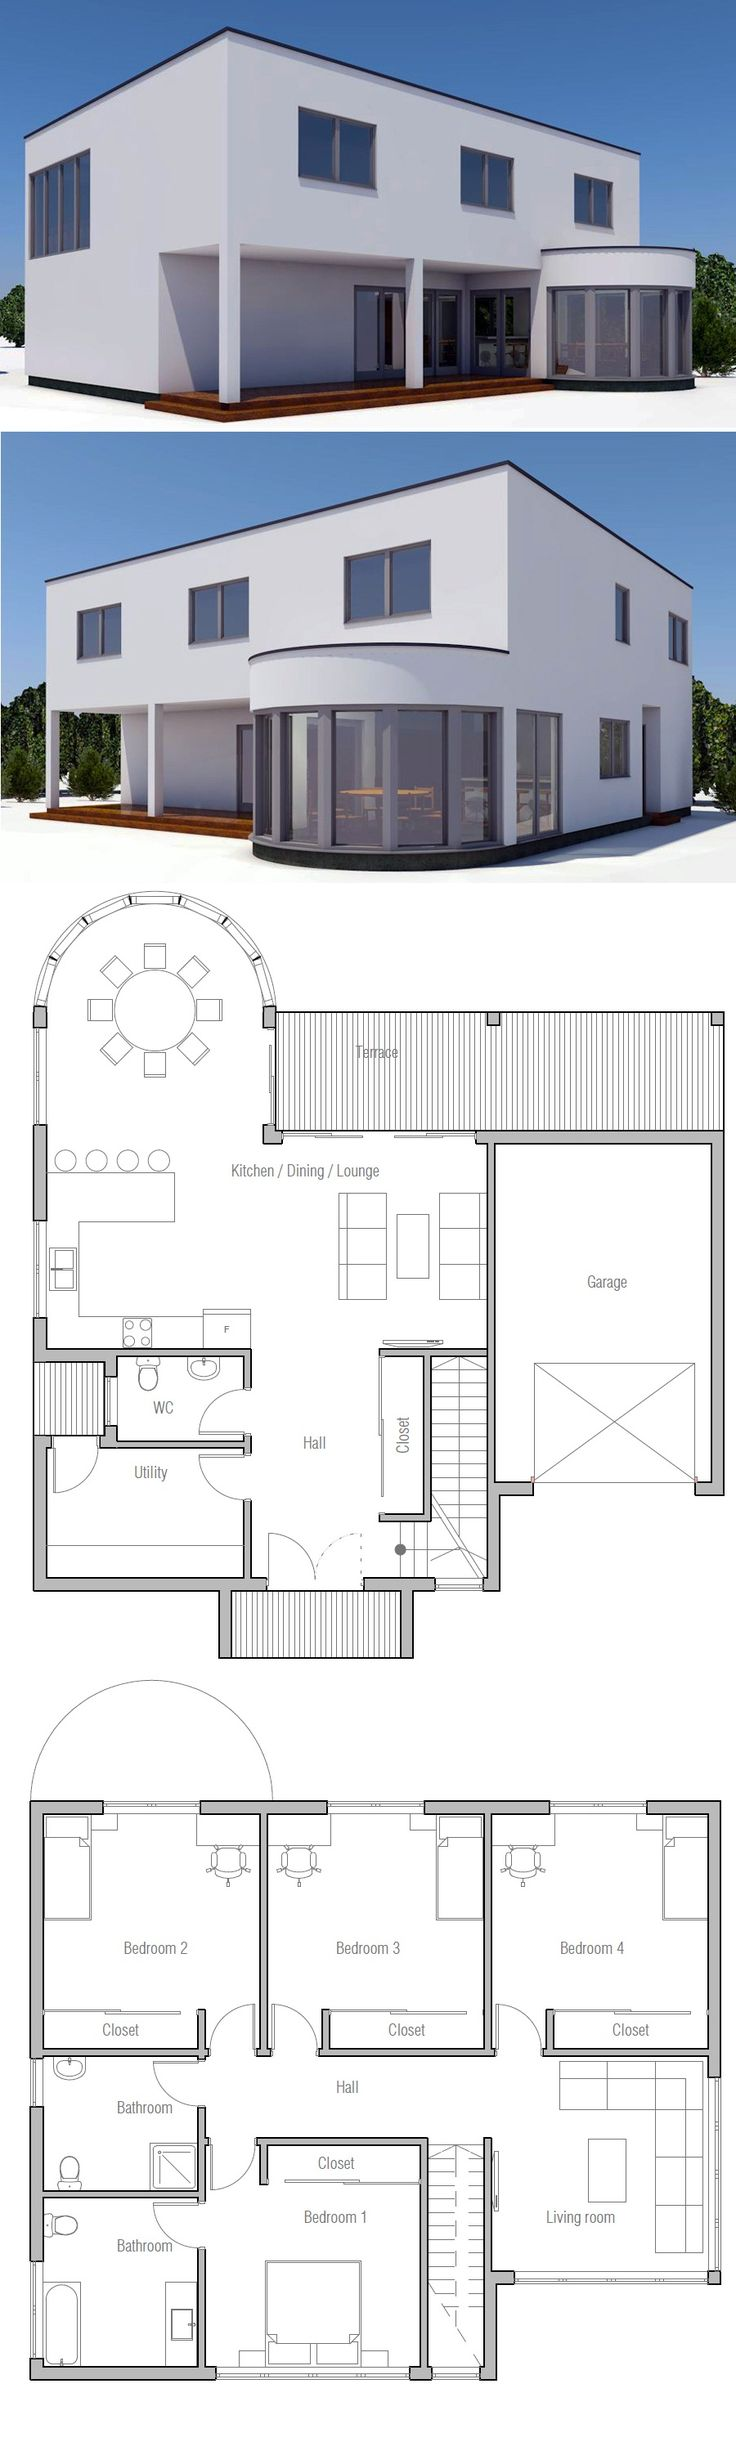 25 best ideas about modern home plans on pinterest modern floor plans house design and - Design house plan photos ...